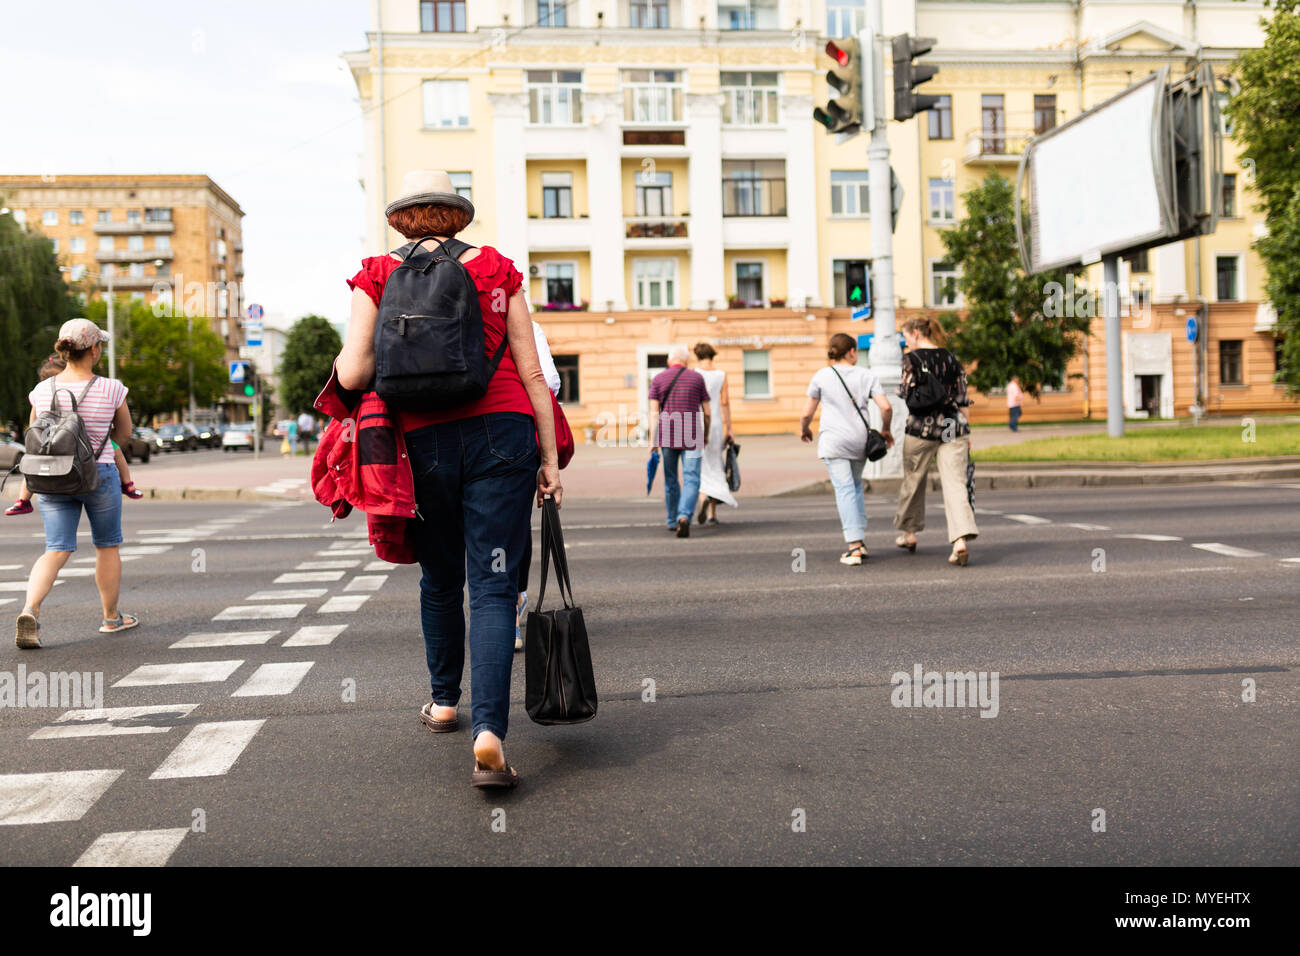 People cross the road on the pedestrian crossing Stock Photo